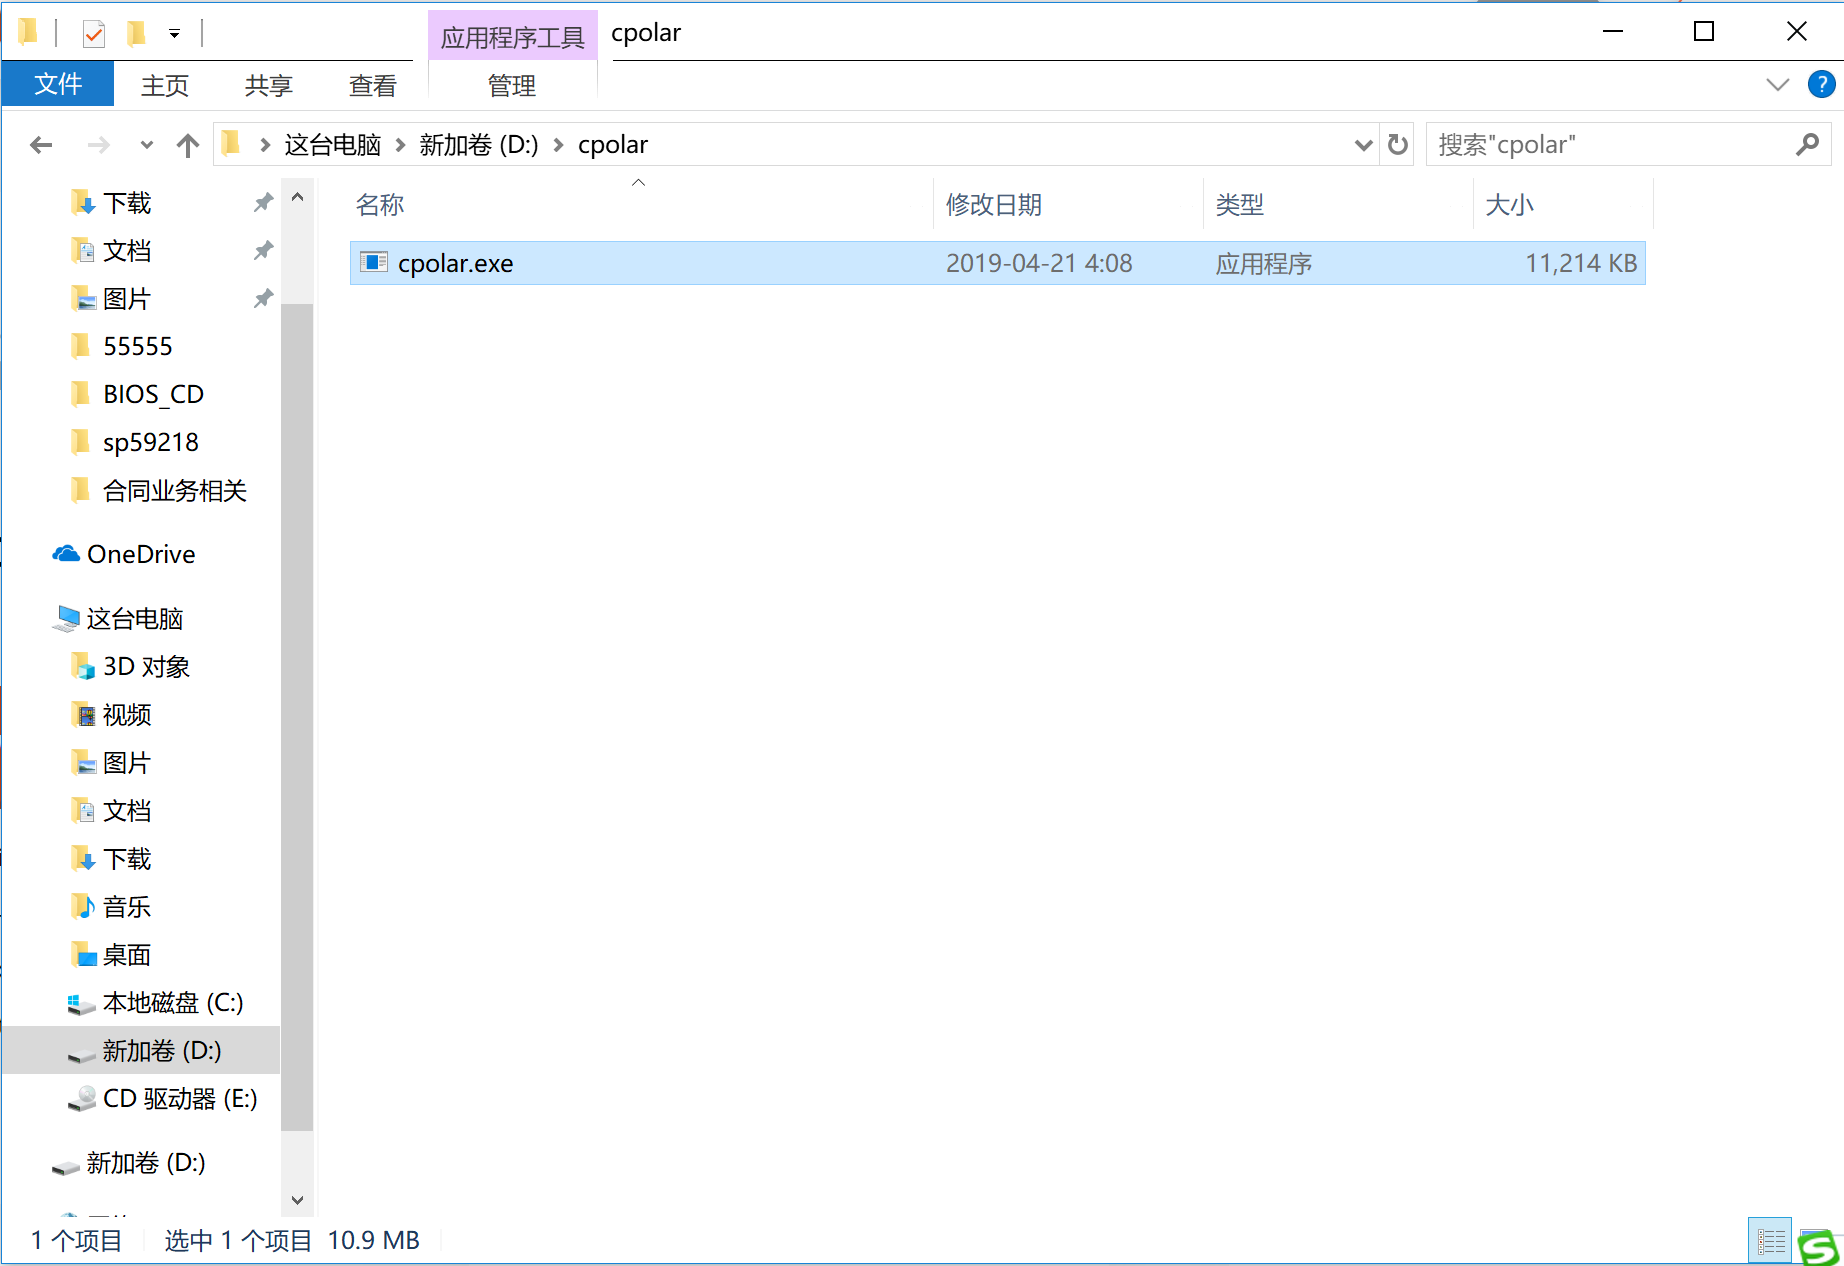 WX20190424-143022@2x.png-163.1kB